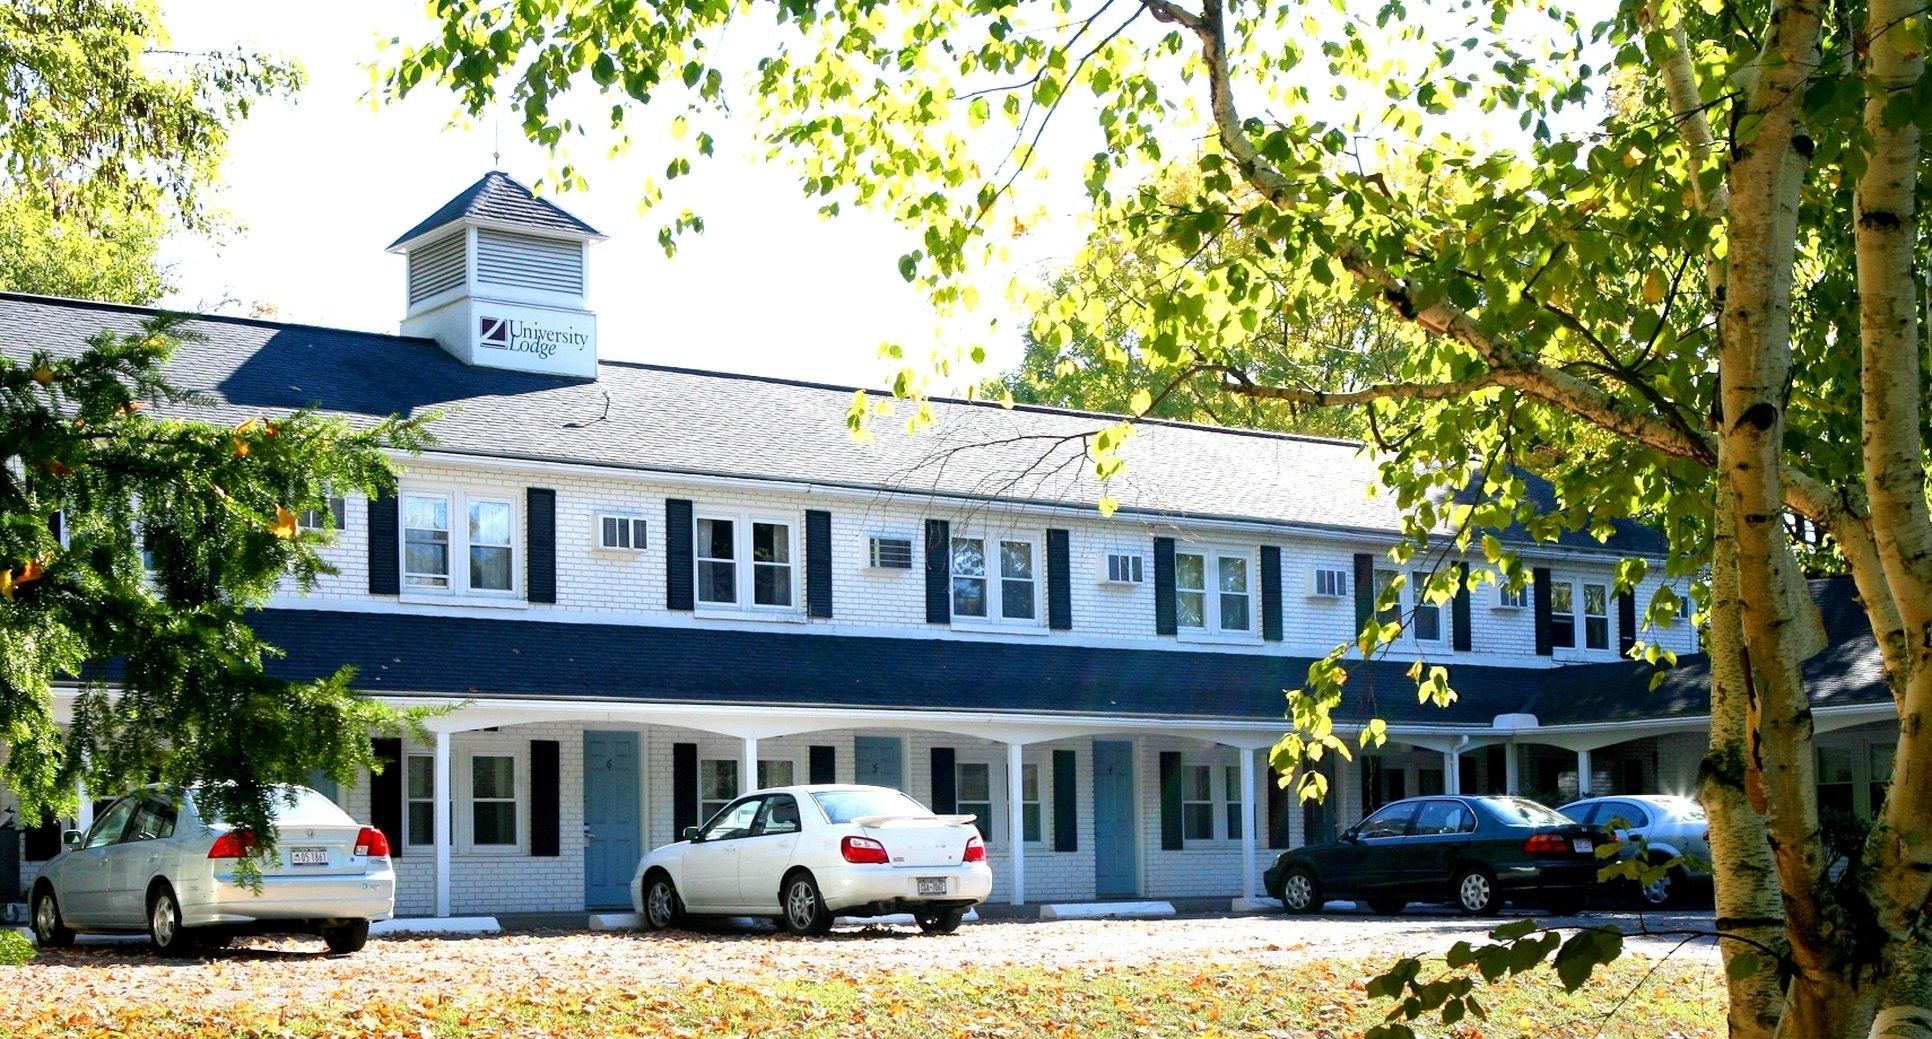 University Lodge in Amherst